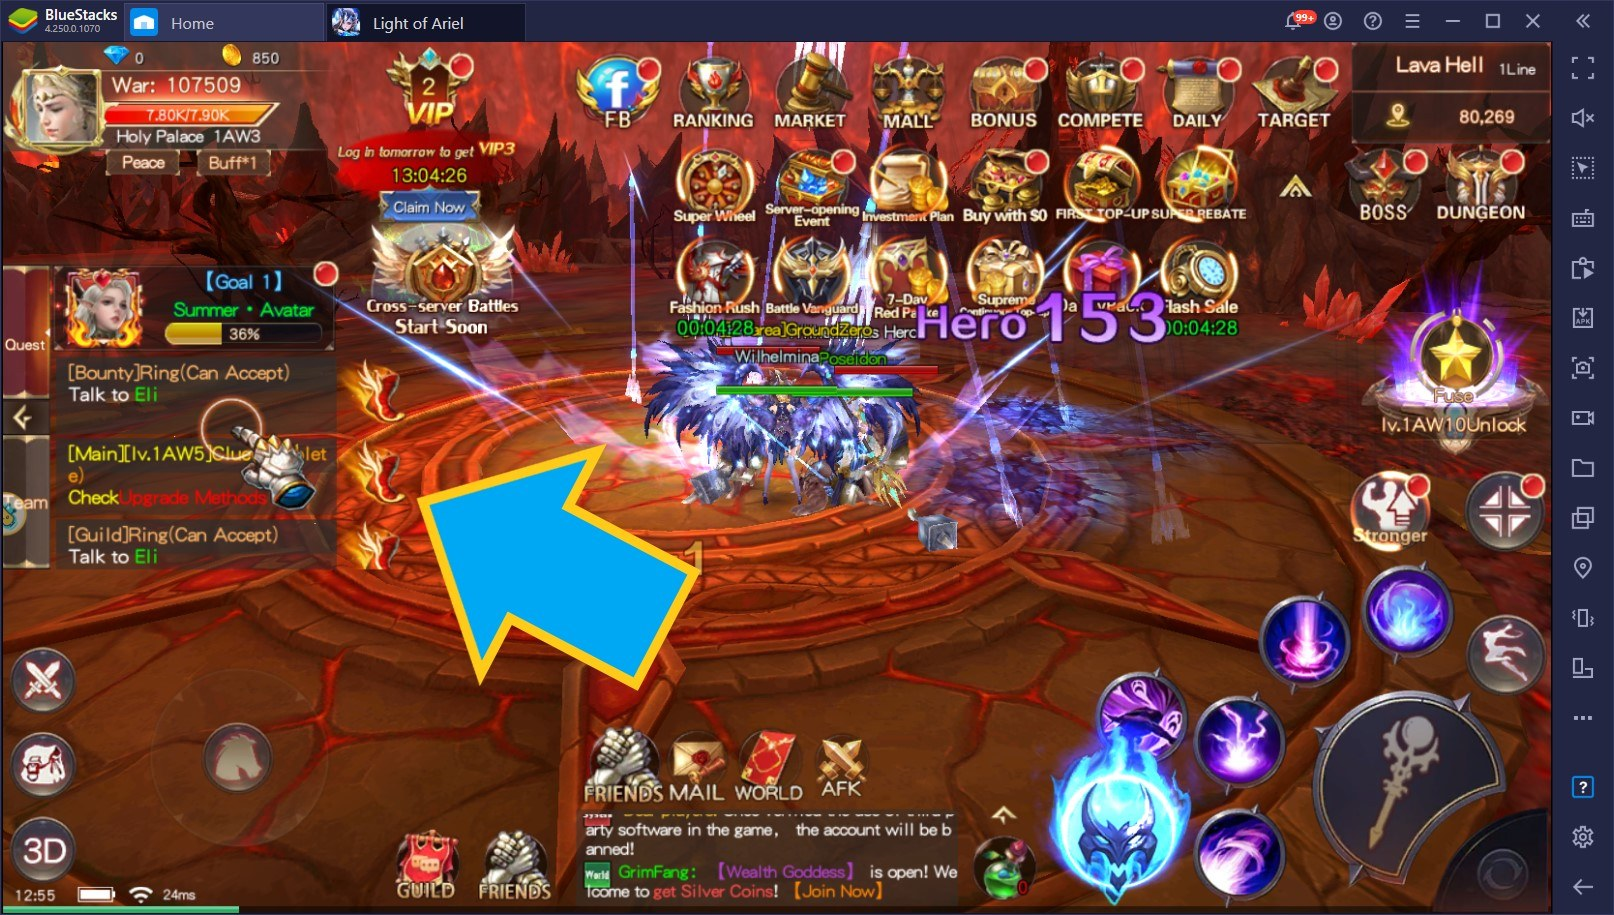 Light of Ariel on PC – The Best Beginner Tips and Tricks for Getting Started on the Right Track